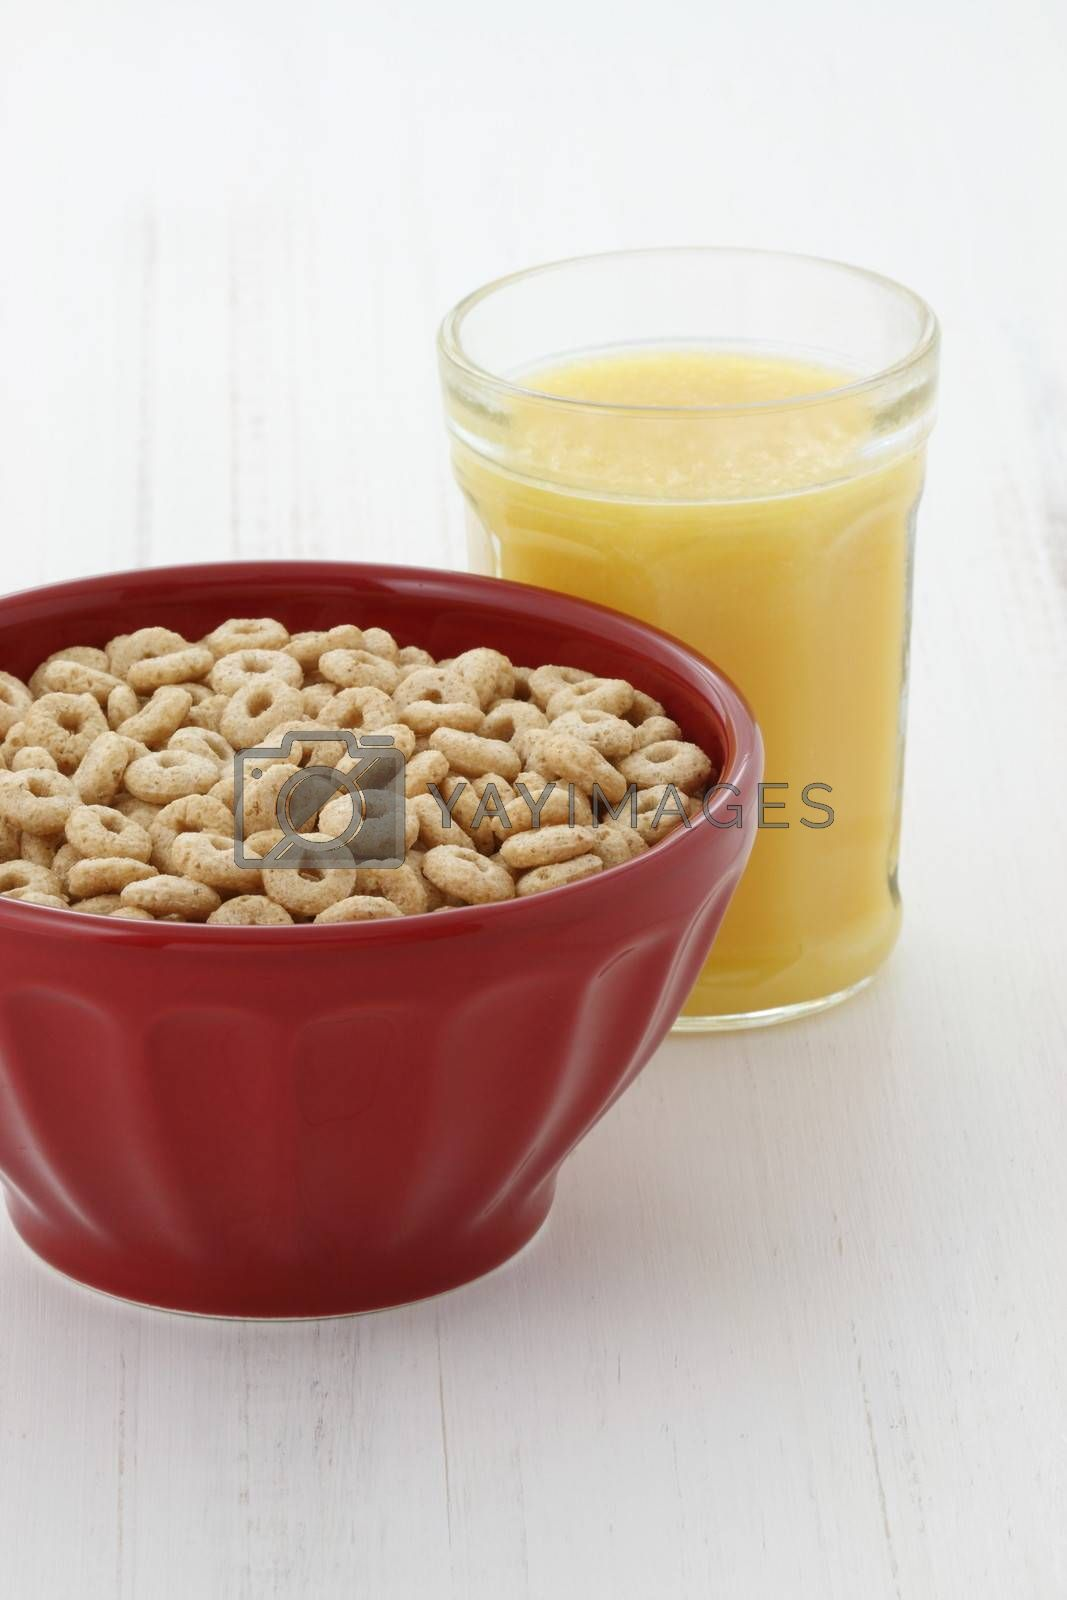 Delicious and healthy honey nuts cereal by tacar